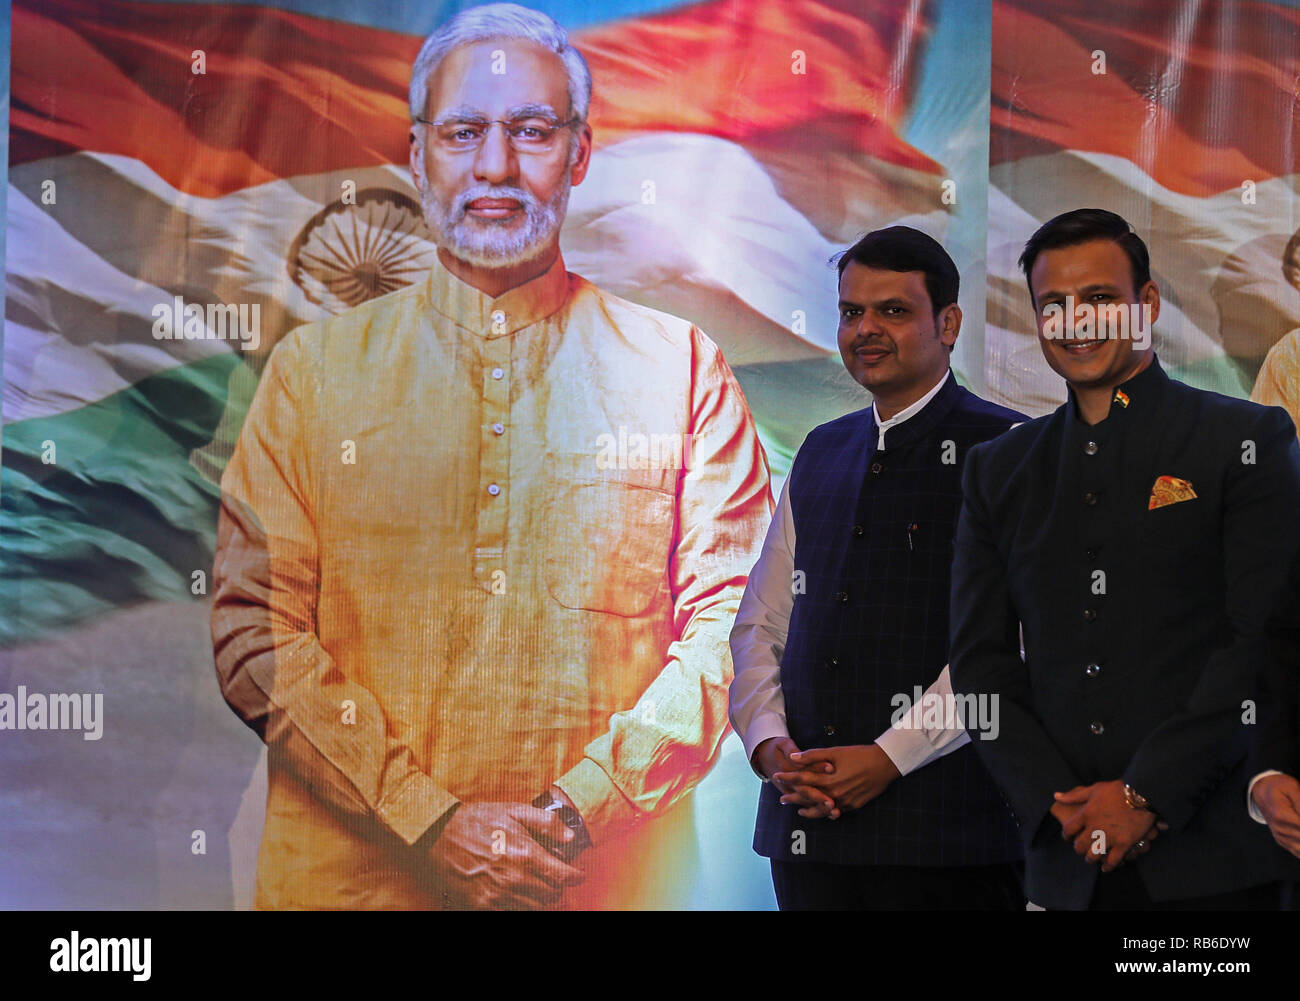 Mumbai, India. 7th Jan, 2019. Maharashtra State's Chief Minister Devendra Fadnavis (L) and Bollywood actor Vivek Oberoi pose for photos during the poster launch of upcoming film 'PM Narendra Modi', a biopic on Indian Prime Minister Narendra Modi, in Mumbai, India, Jan. 7, 2019. Vivek Oberoi portrays the character of Indian Prime Minister Narendra Modi in the film. Credit: Stringer/Xinhua/Alamy Live News - Stock Image